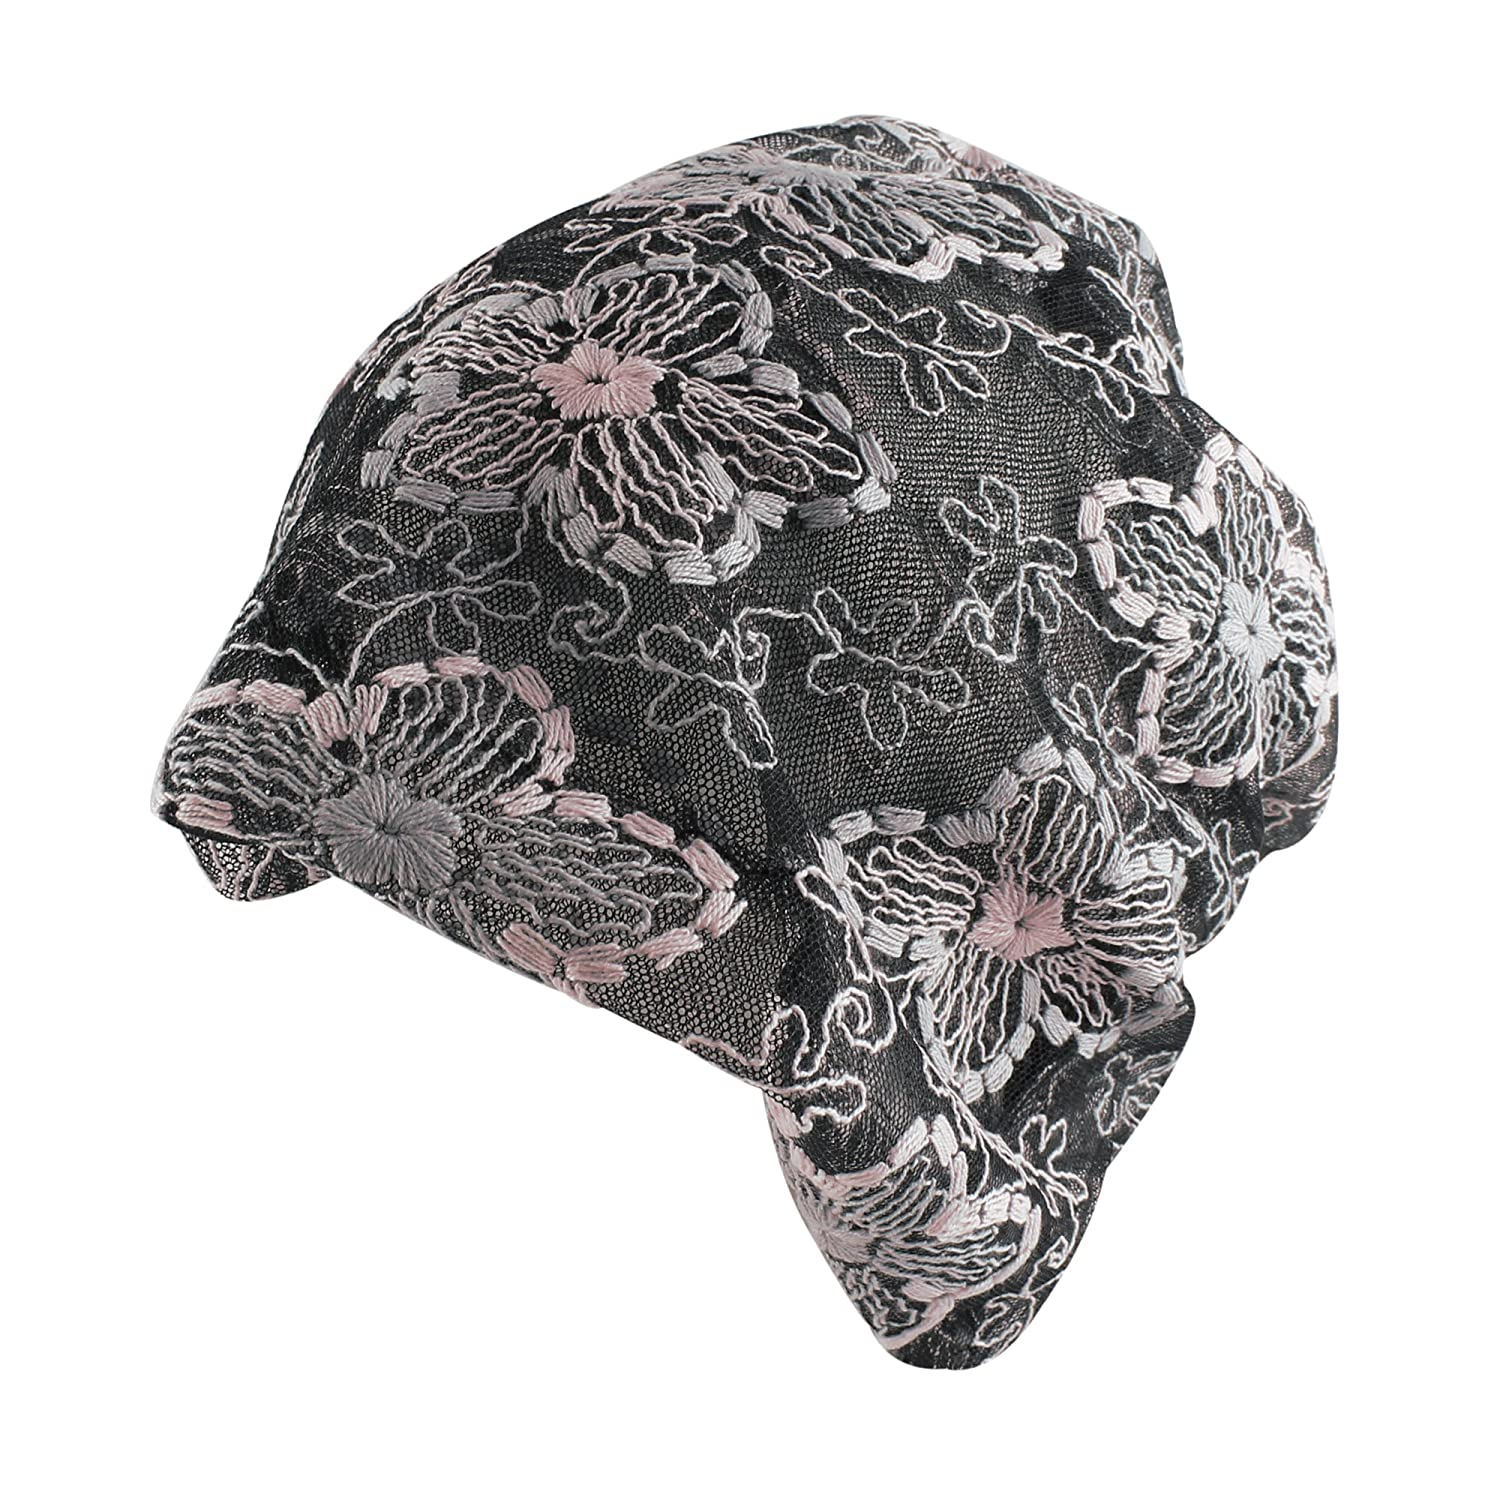 Morehats Floral Stitched Slouchy Mesh Beanie Headband